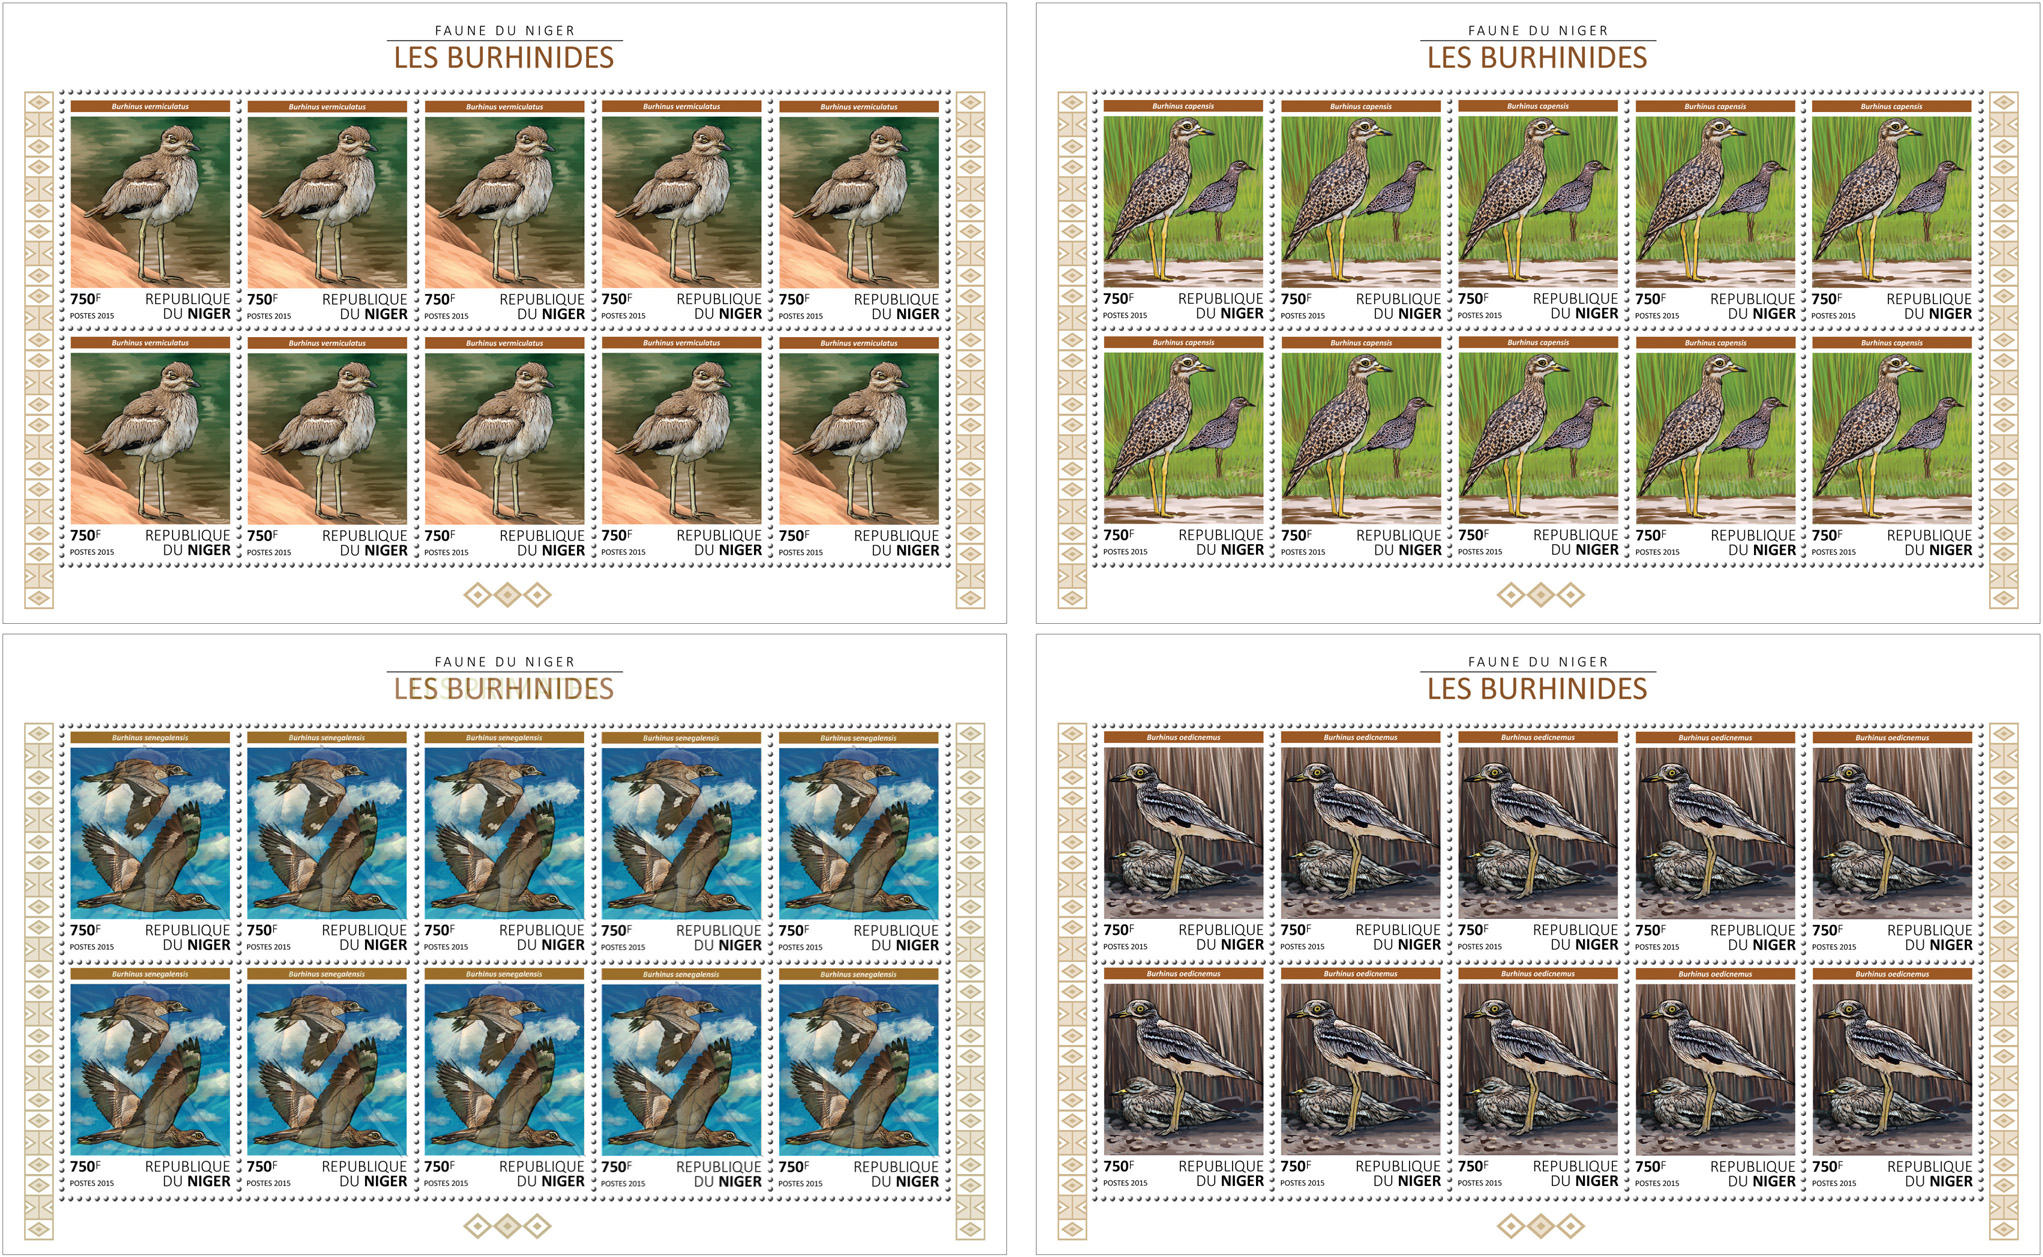 Birds 4x10v - Issue of Niger postage stamps